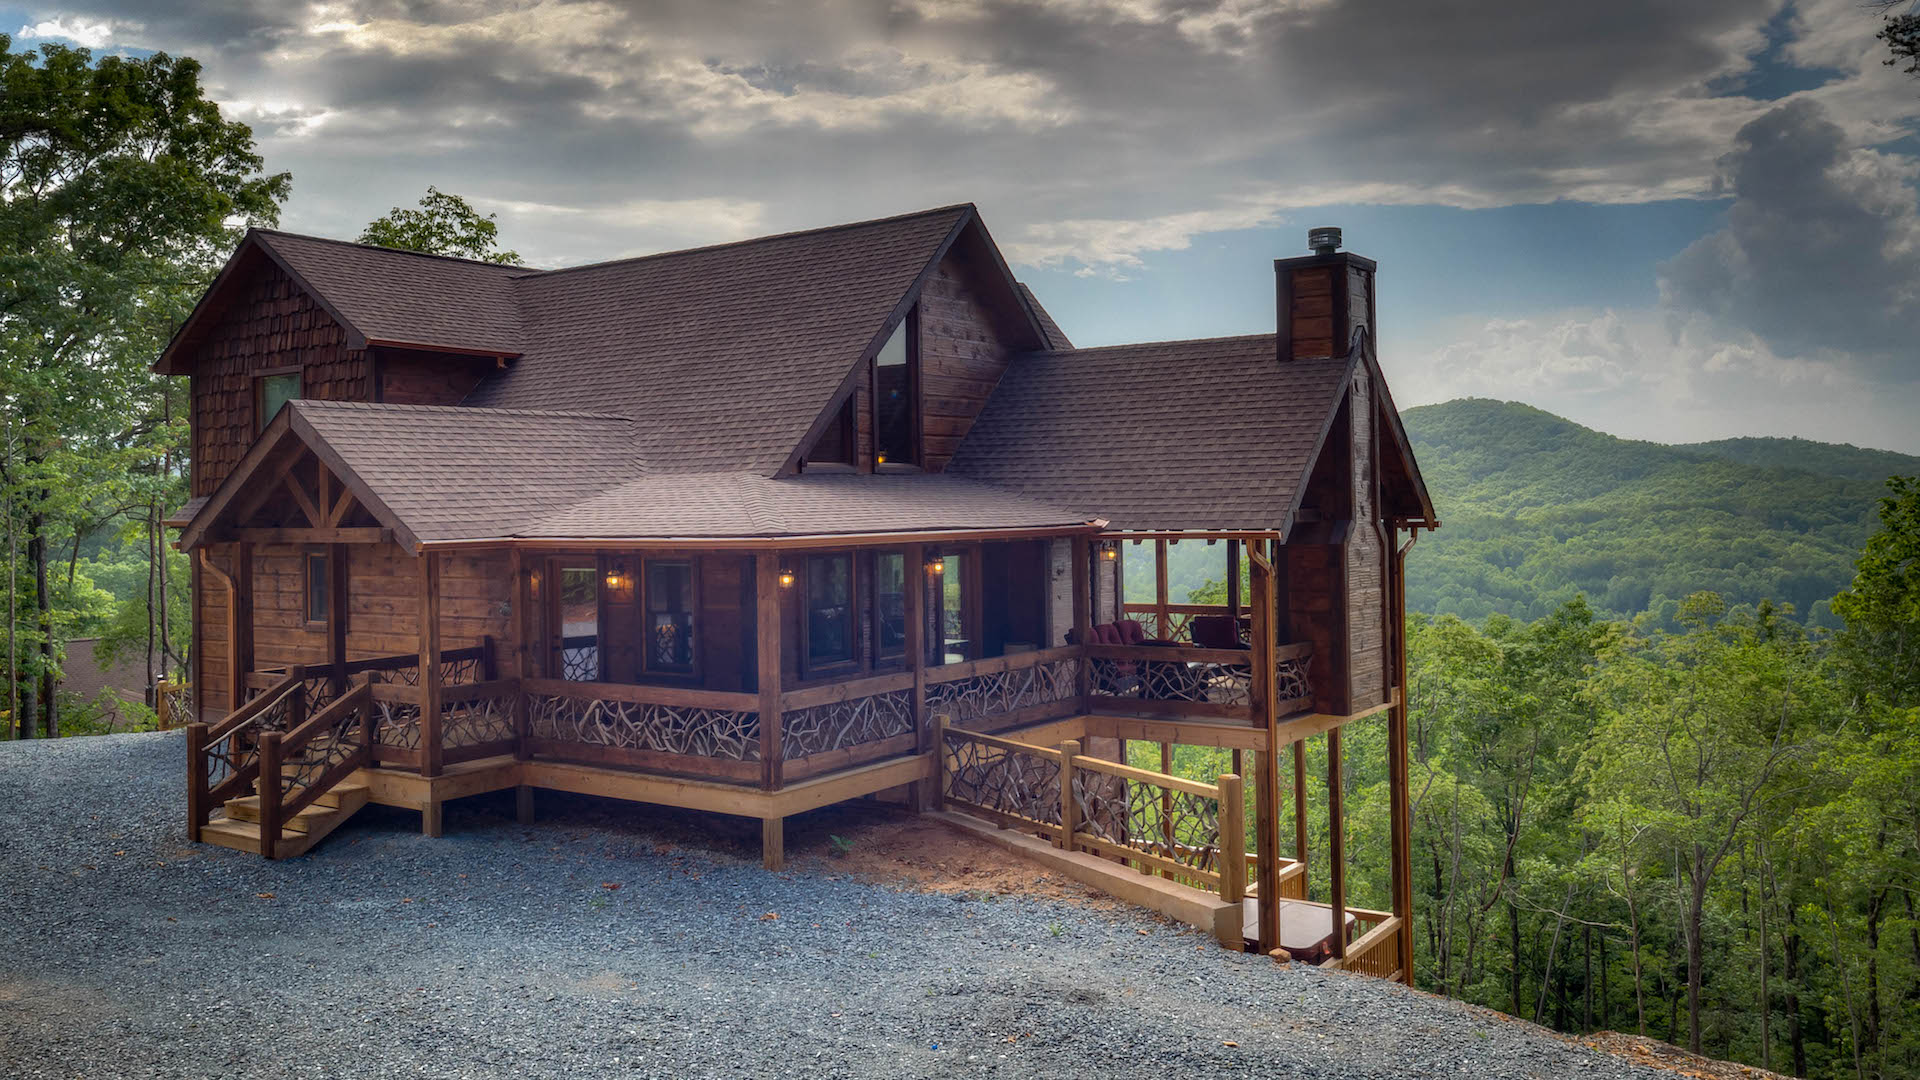 cabins blue cabin ridge the about res all cabinrentals ga rentals high view mountains